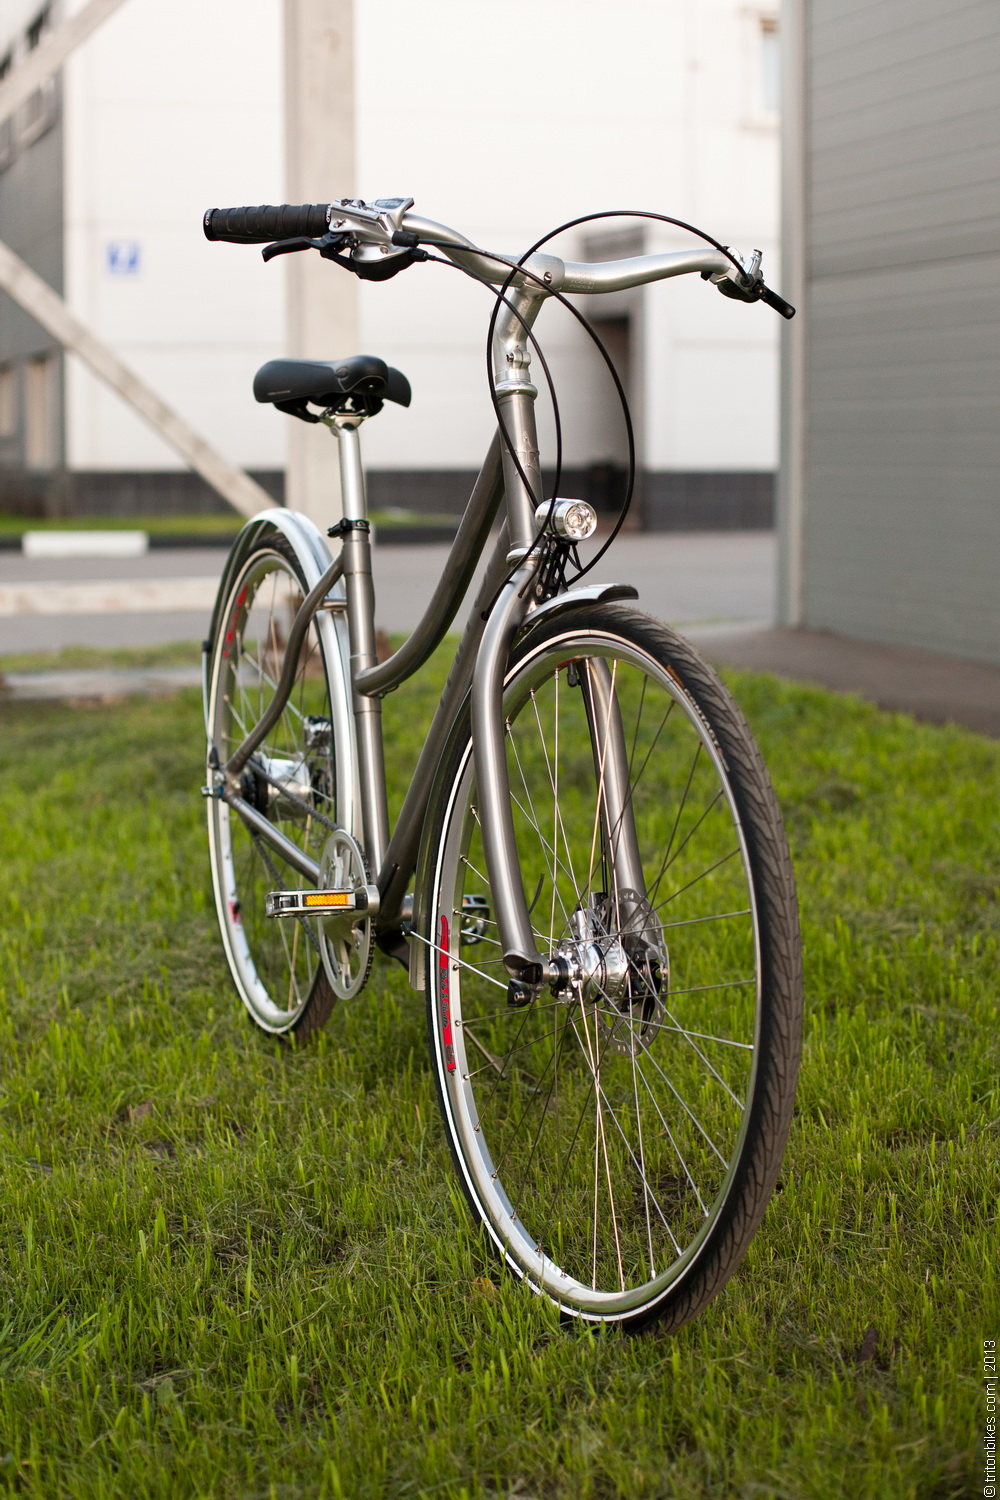 Continental Bicycle Tires >> Ideal bicycle for a lady by Triton Bikes | Triton